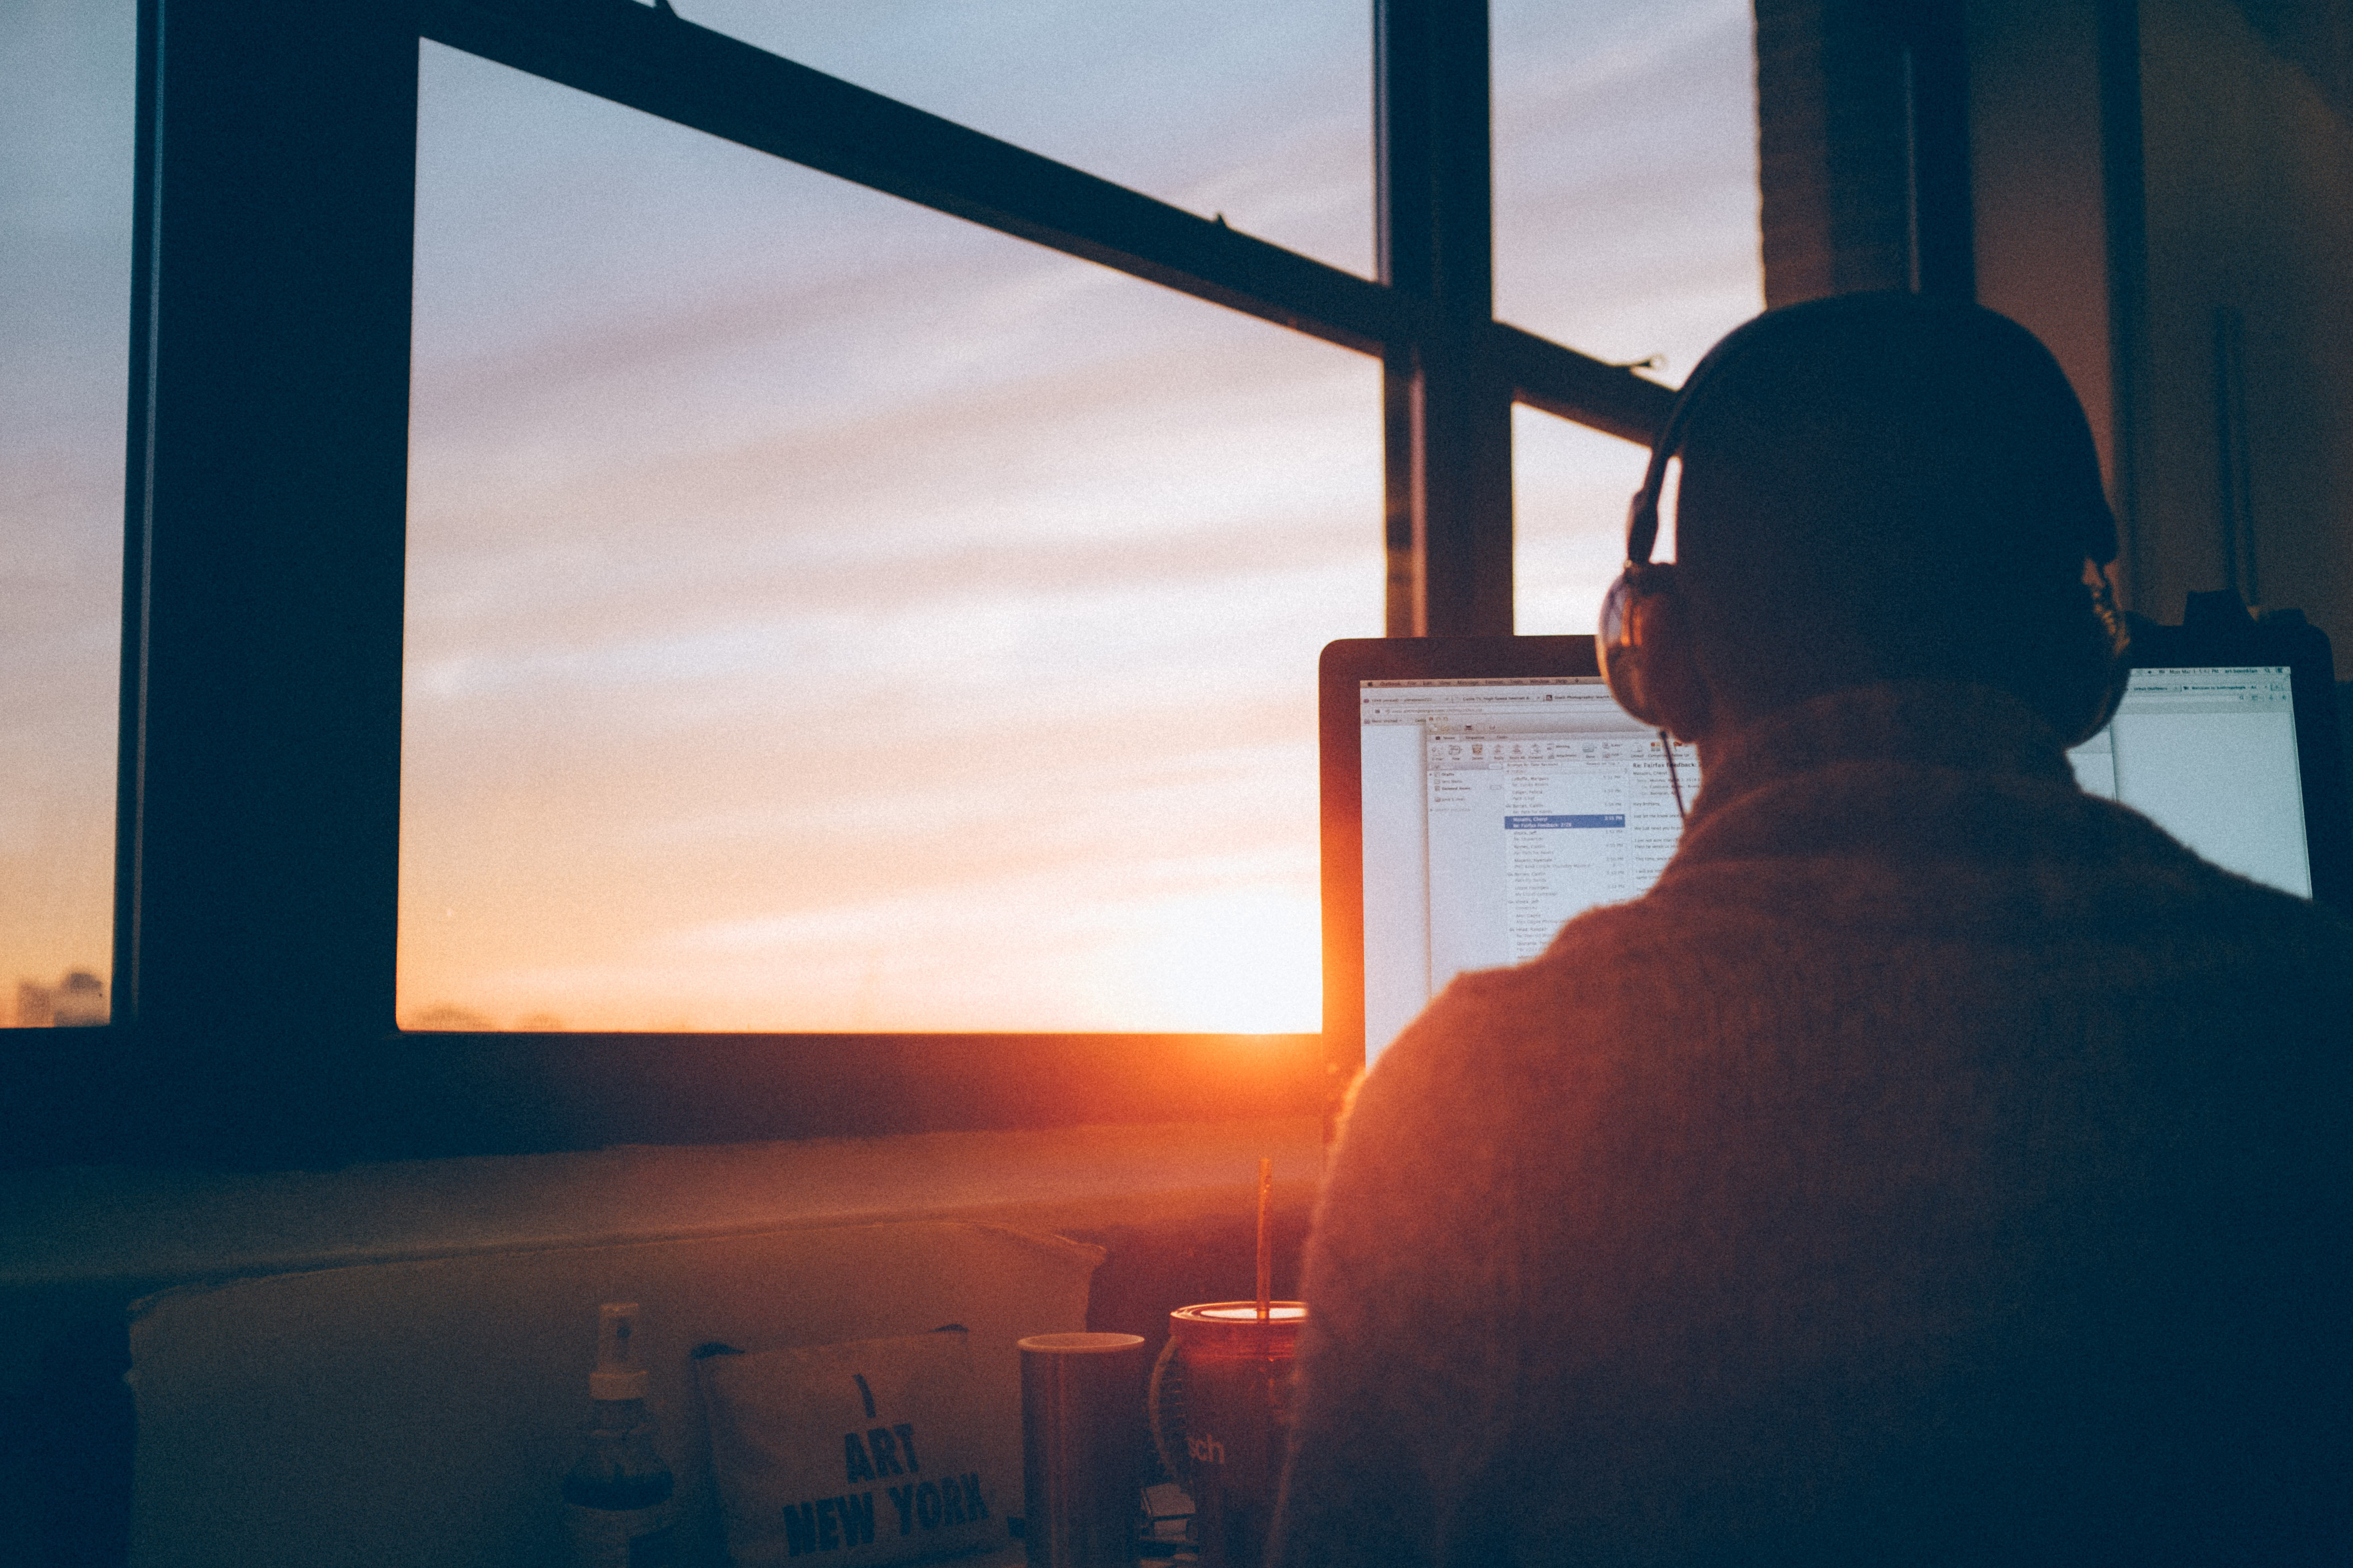 How to Concentrate on Work Without Getting Distracted